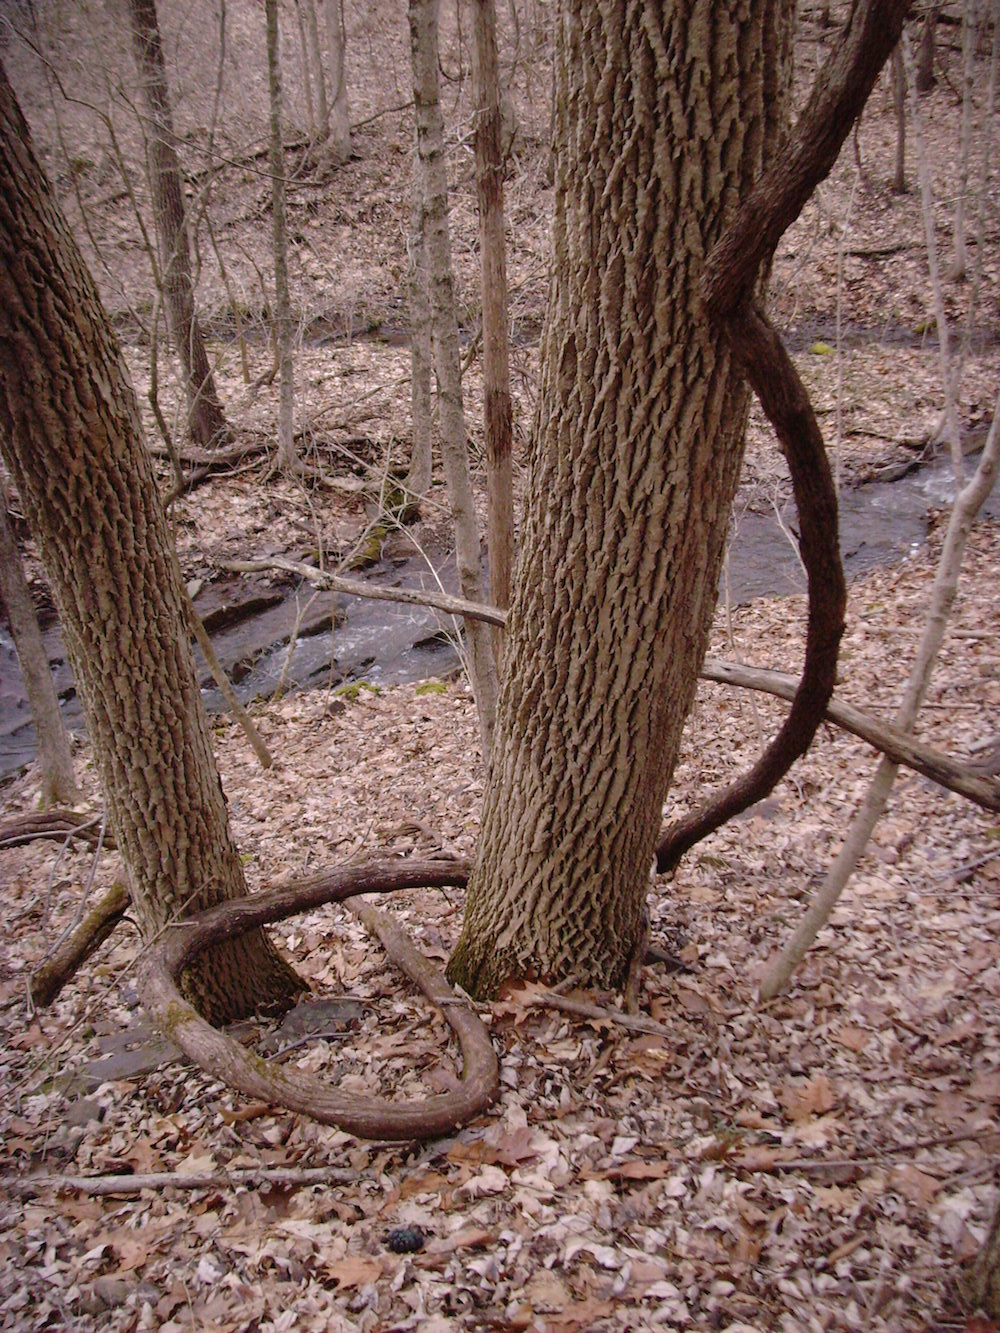 From the archive, the snake-like plant is a native grapevine.